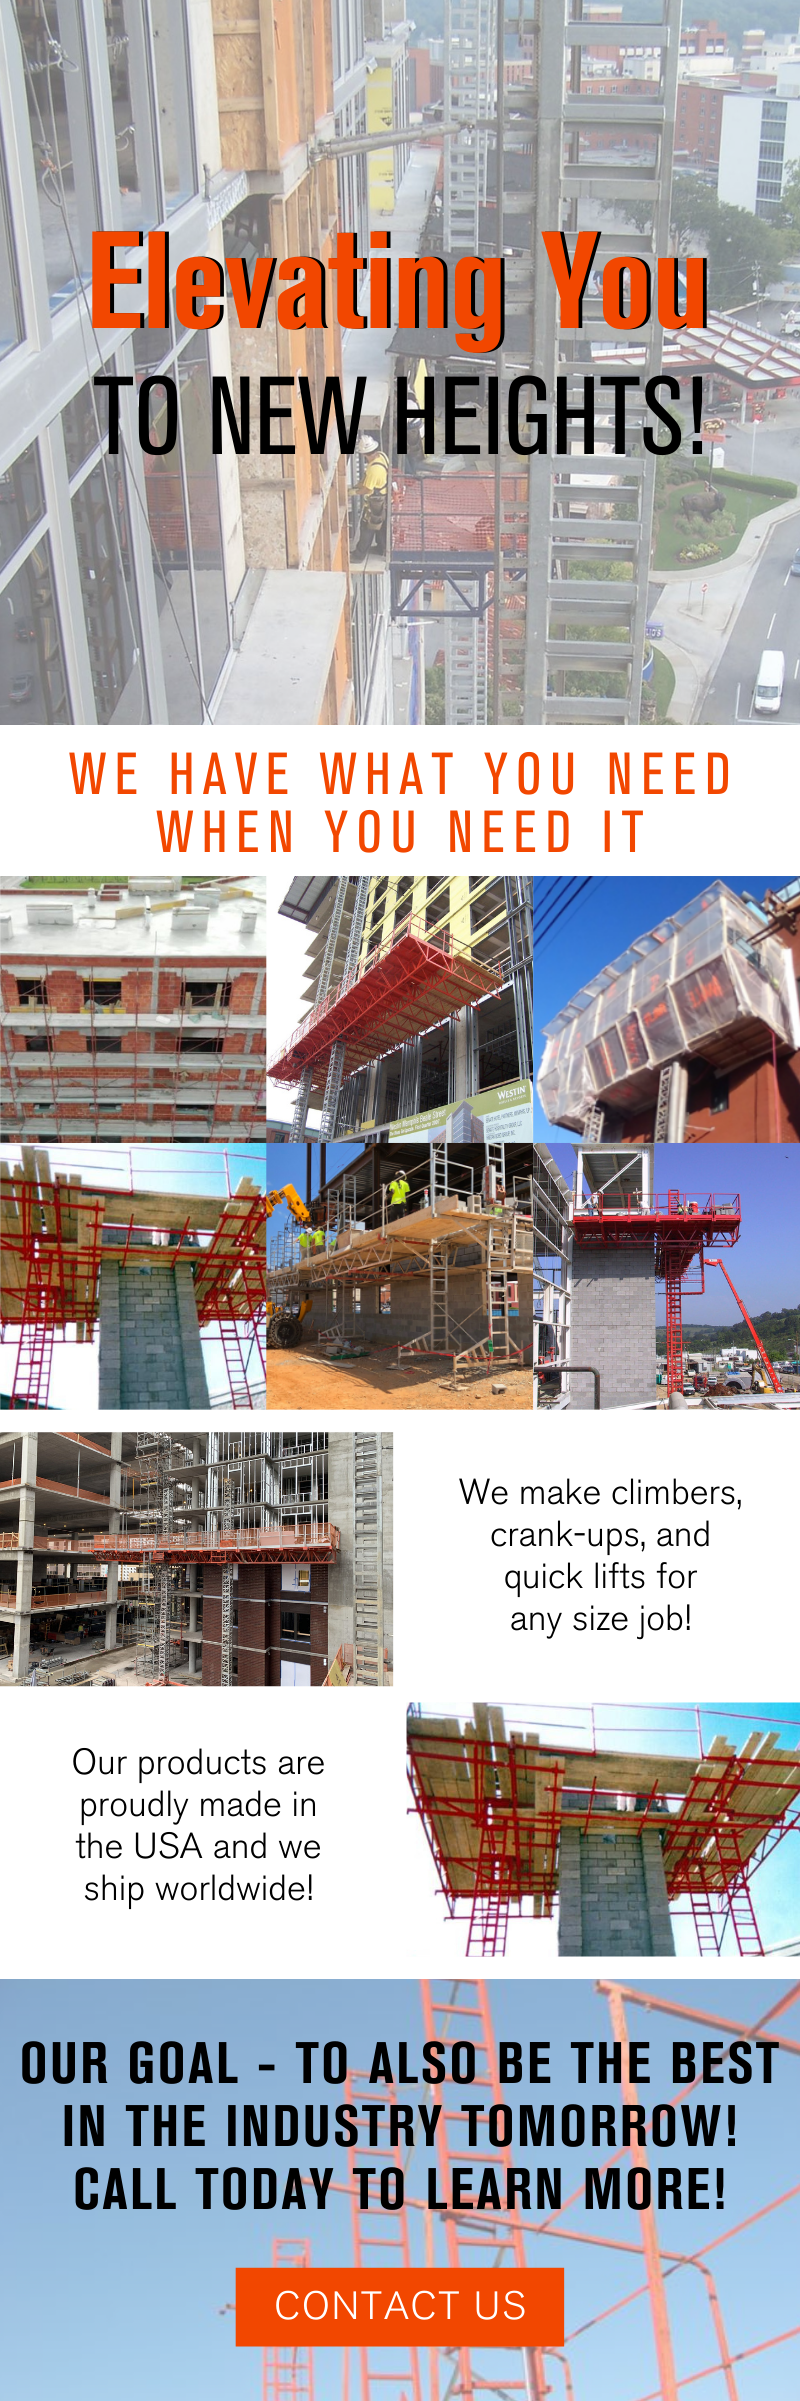 Elevate Your Job Site! 🏗 3